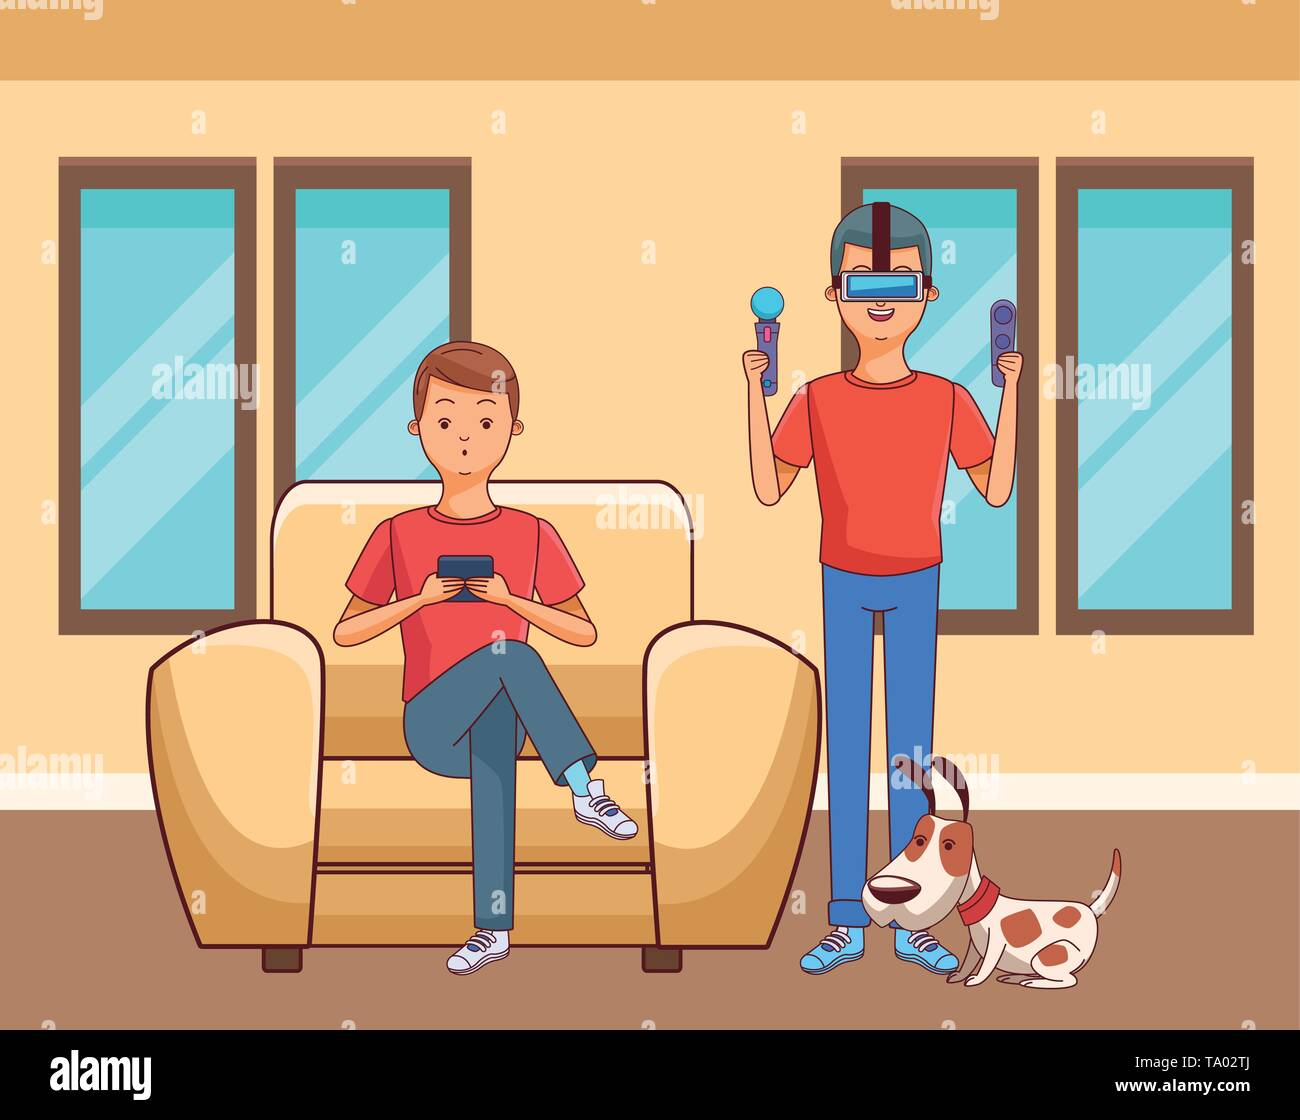 Millennial people gaming party - Stock Image